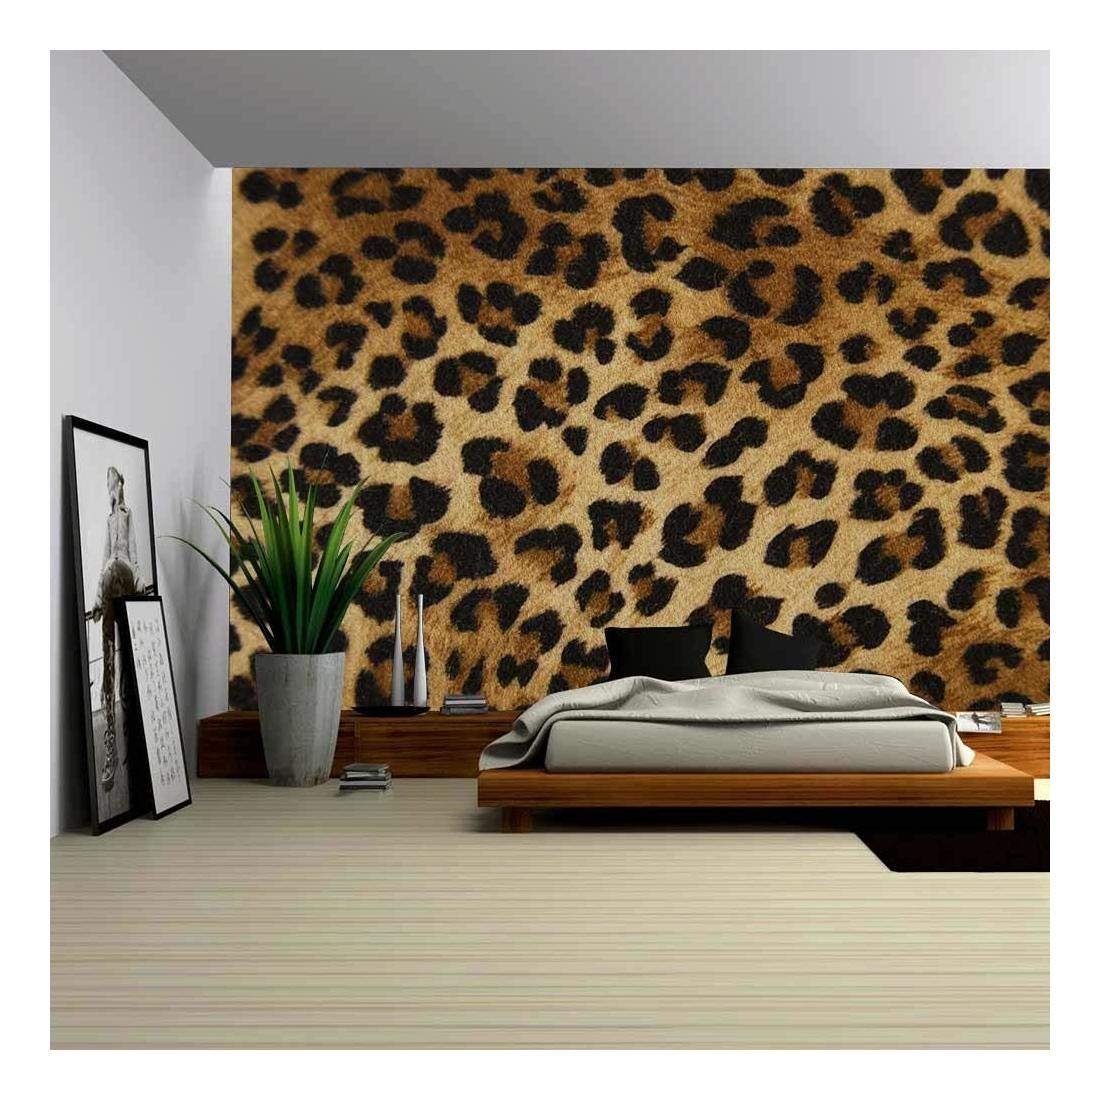 wall26 - Background Cloth as a Tiger - Removable Wall Mural | Self-adhesive Large Wallpaper - 66x96 inches